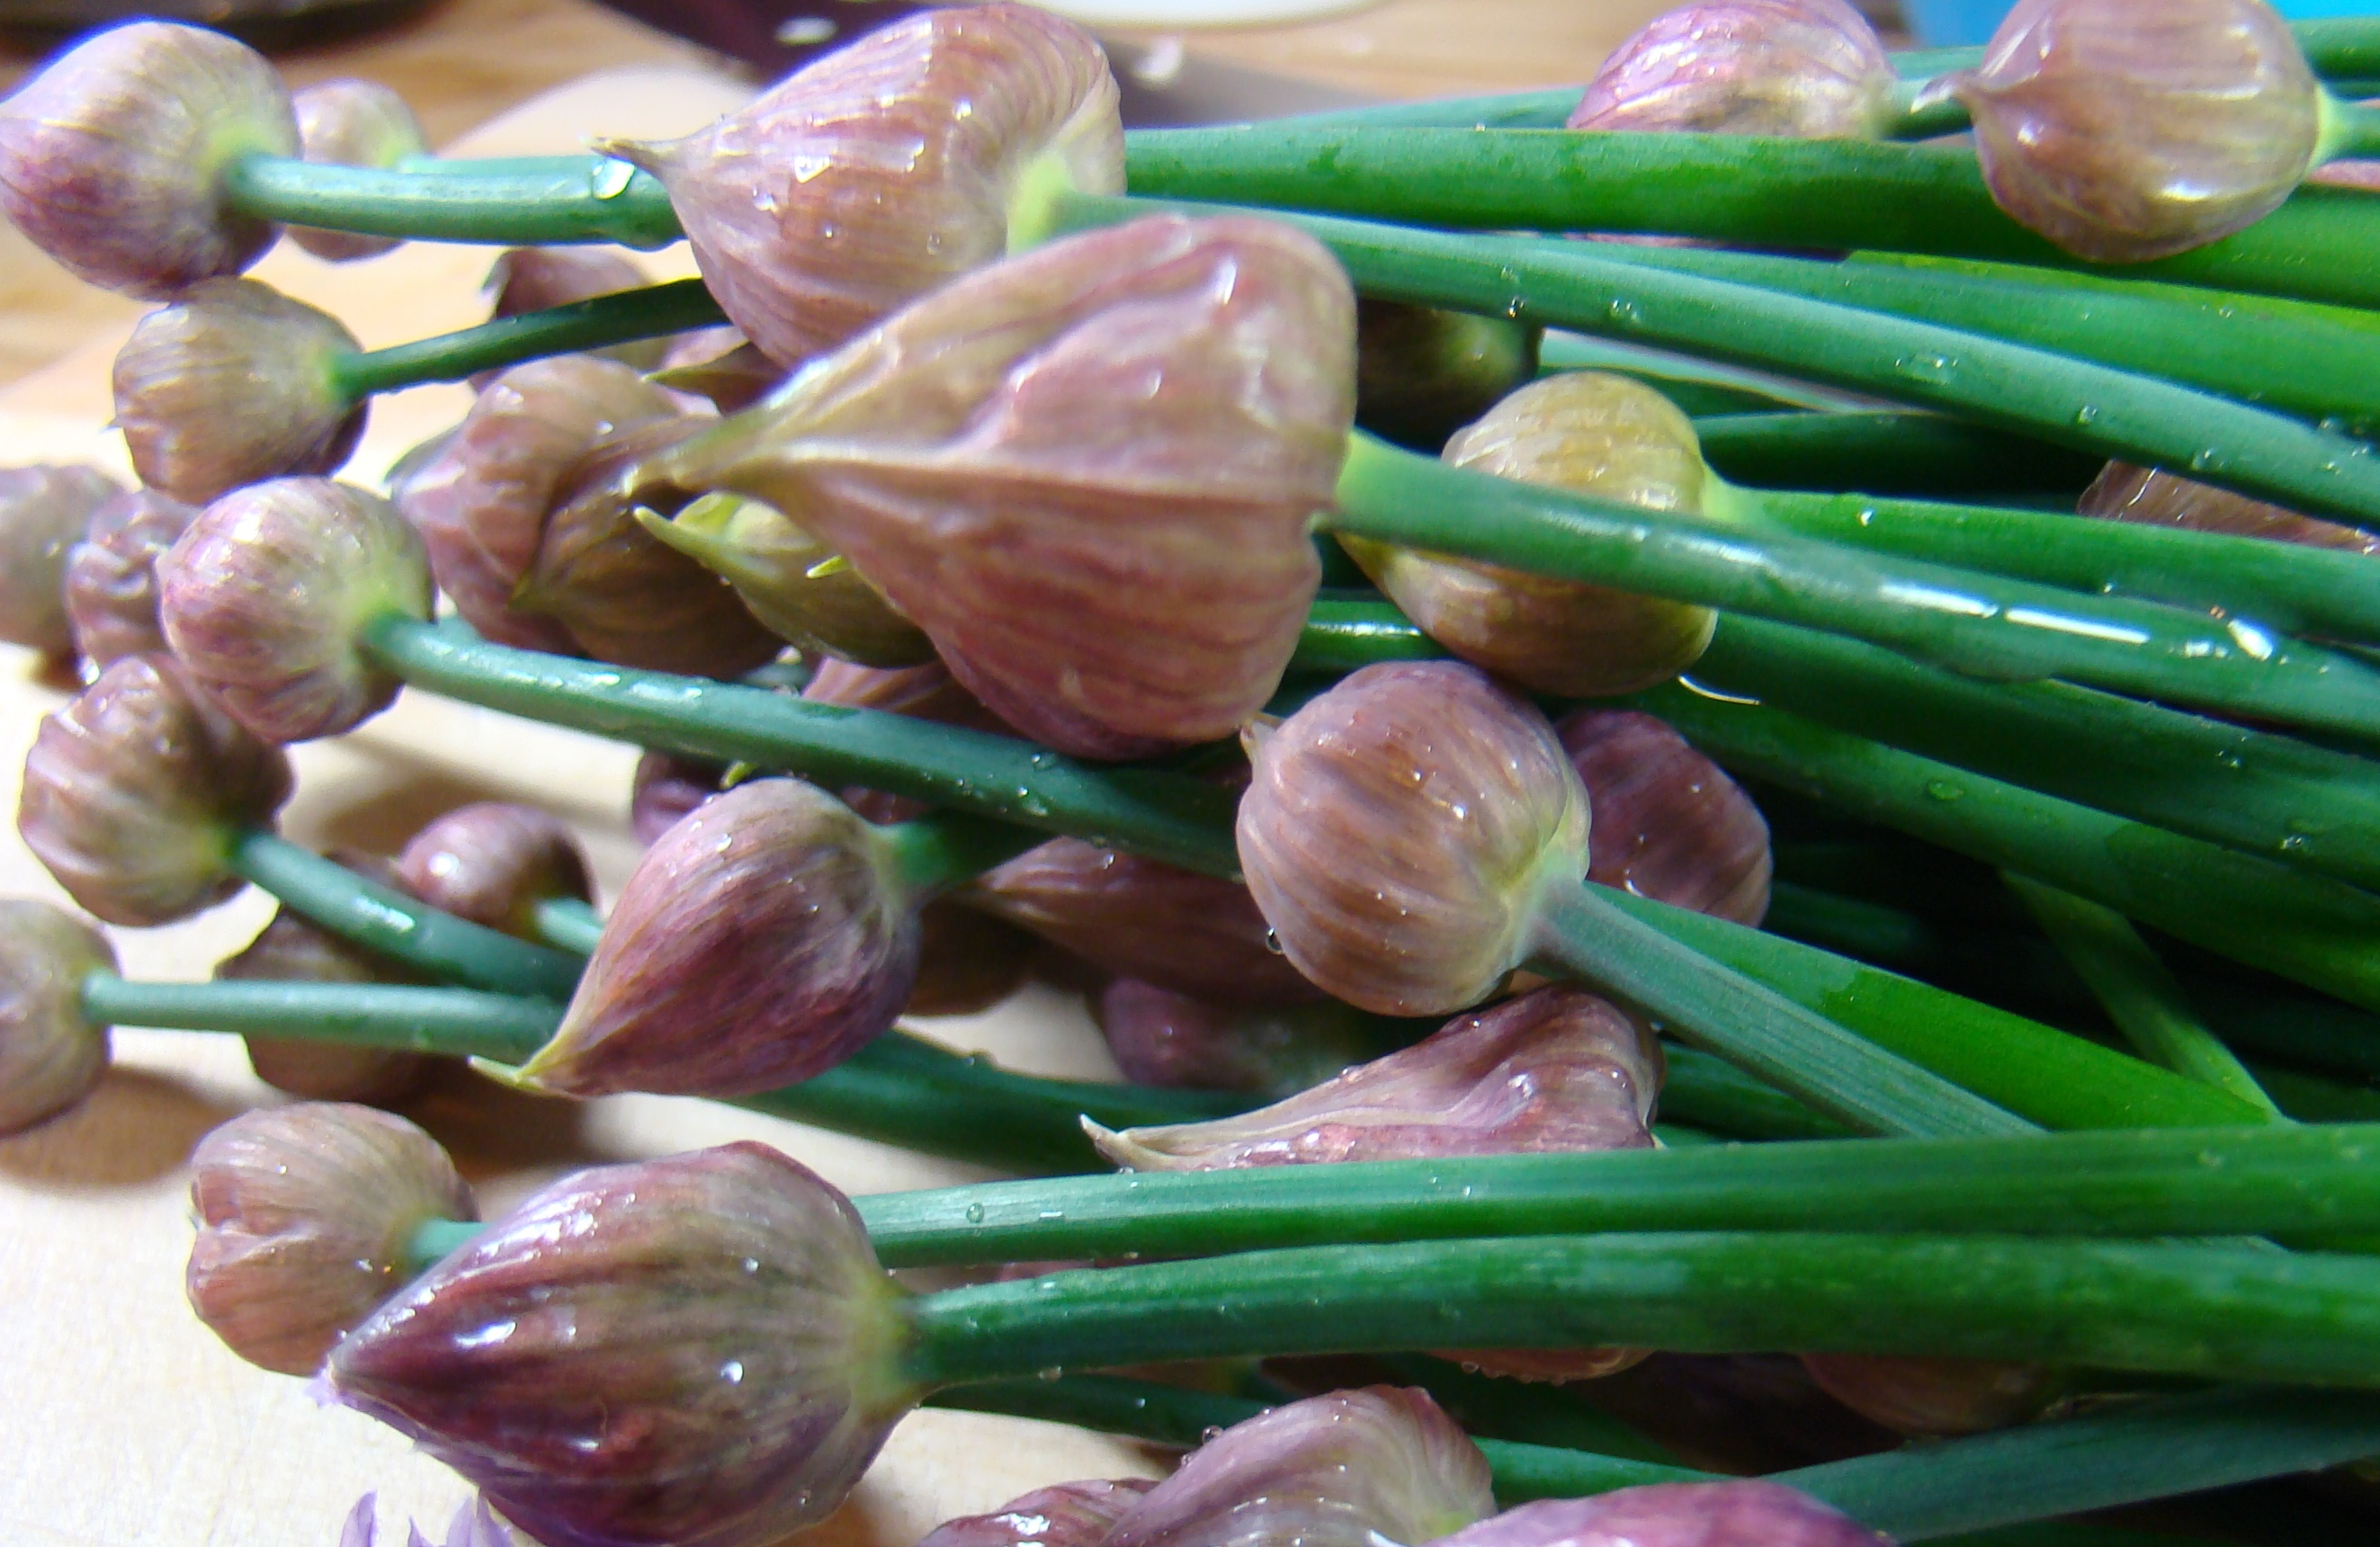 Chive Flower and Shrimp Stir Fry